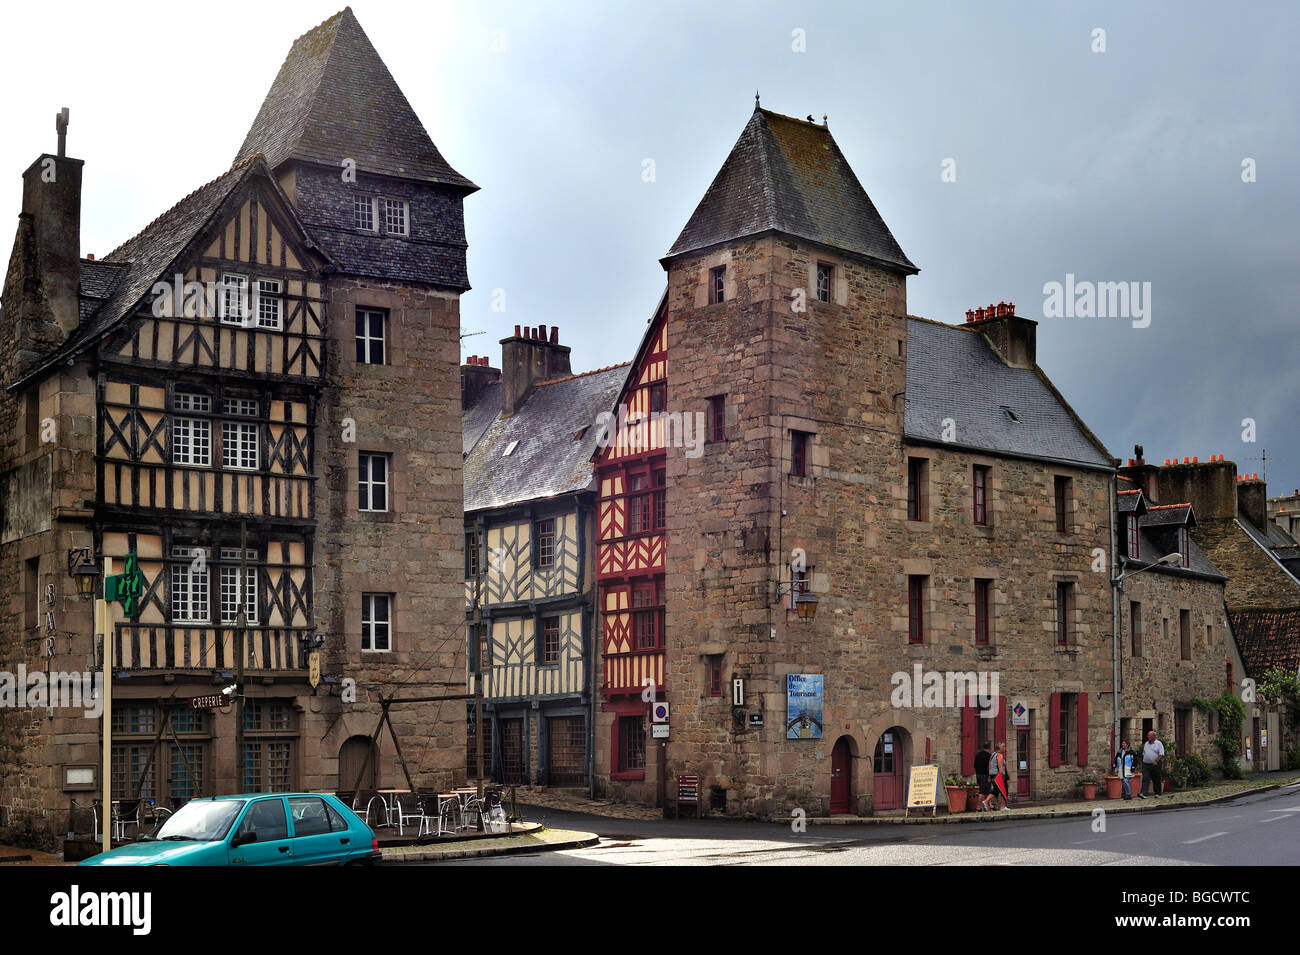 Colourful half-timbered houses at Tréguier, Côtes-d'Armor, Brittany, France - Stock Image